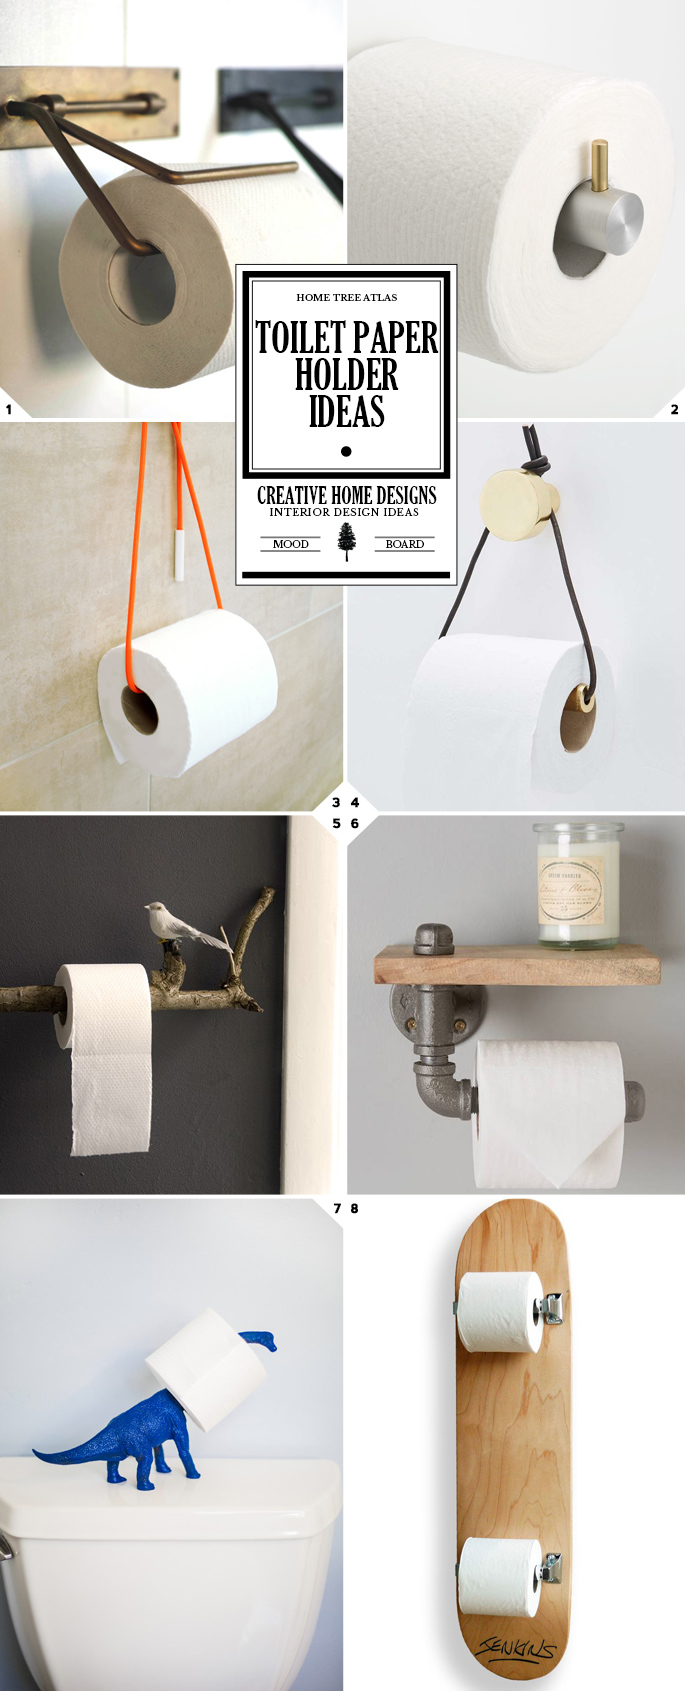 Keeping It Classy: Toilet Paper Holder Ideas, From DIY Ideas to Modern Designs